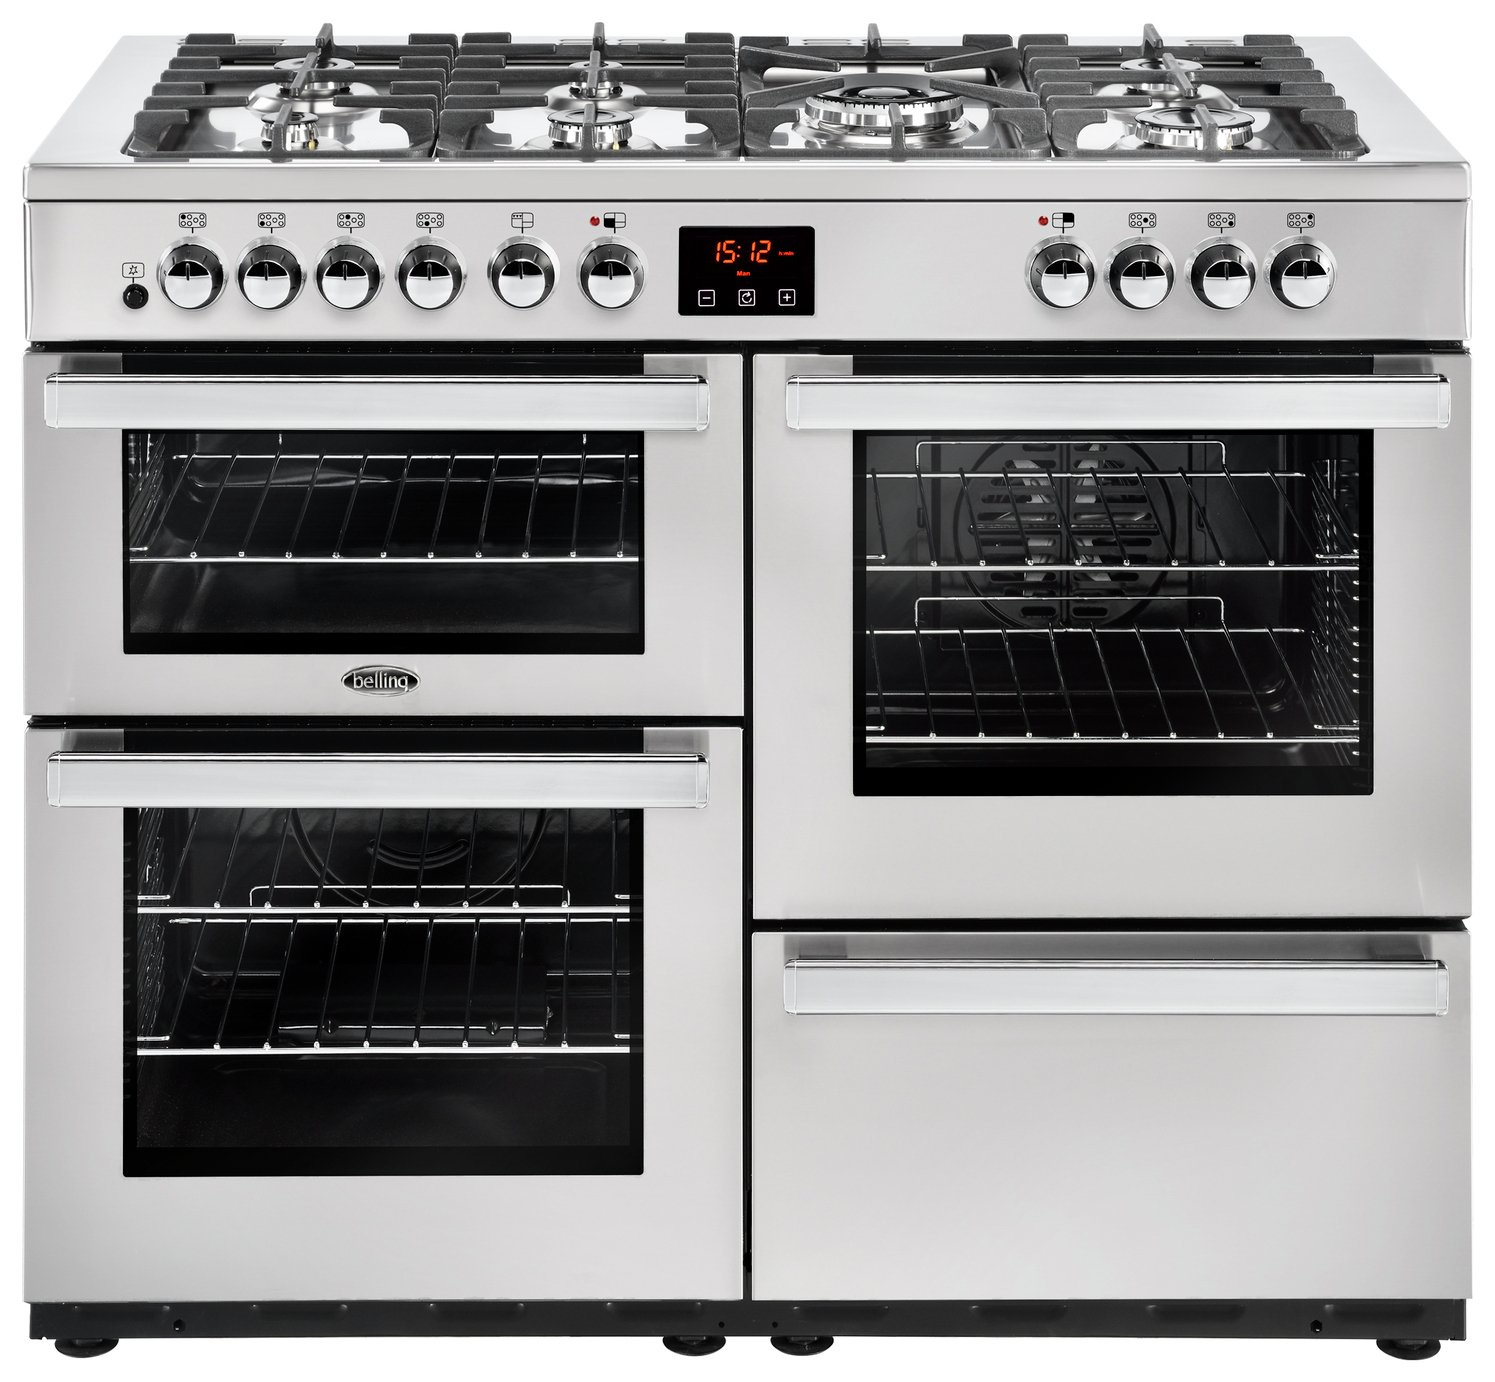 Belling Cookcentre 110DFT 110cm Range Cooker - S/ Steel